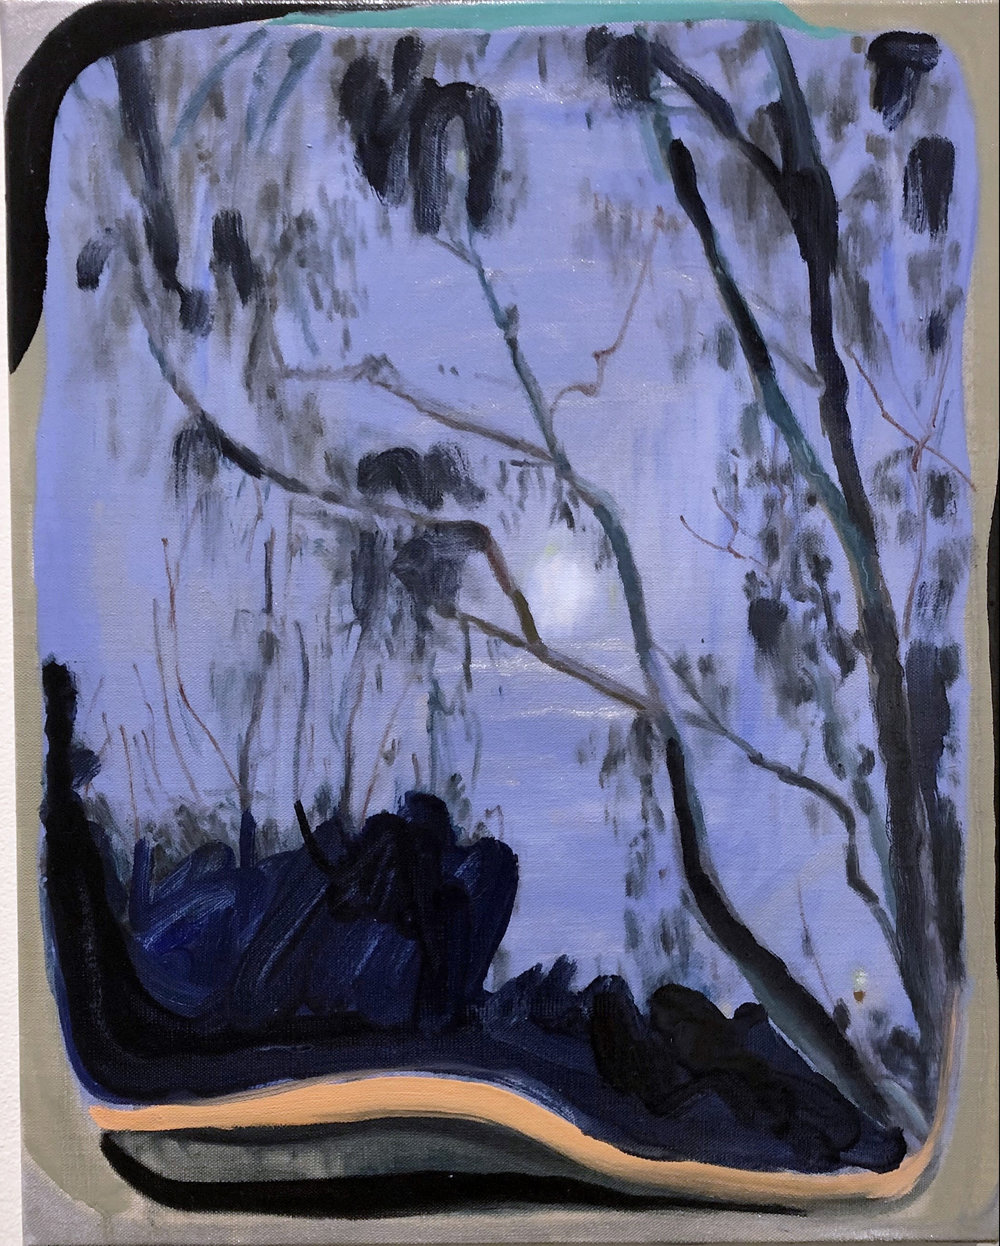 Elyss McCleary  Night trees frame the moon at Merri Creek skate park, dusk, a beautiful refreshing silver shower  2019 , Oil on linen, 51cm x 41cm  This is an ongoing series of works that are painting laments to the night trees. I take photos of the trees in the evening, dawn or at night, the paintings are quiet portraits of some of these.The sky and camera flash stage a surreal flat image of it in space.  I often think about the trees there holding space, people and things around, sounds, ciggies, maybe rubbish or piss on it, a road through, a bright light. The neon glow of amber city or suburban occupational and health light for made for us is blaring on the tree, i wish i could give it some sunglasses for this at night at least. They are so very beautiful and strong, talking and making sounds with each other.